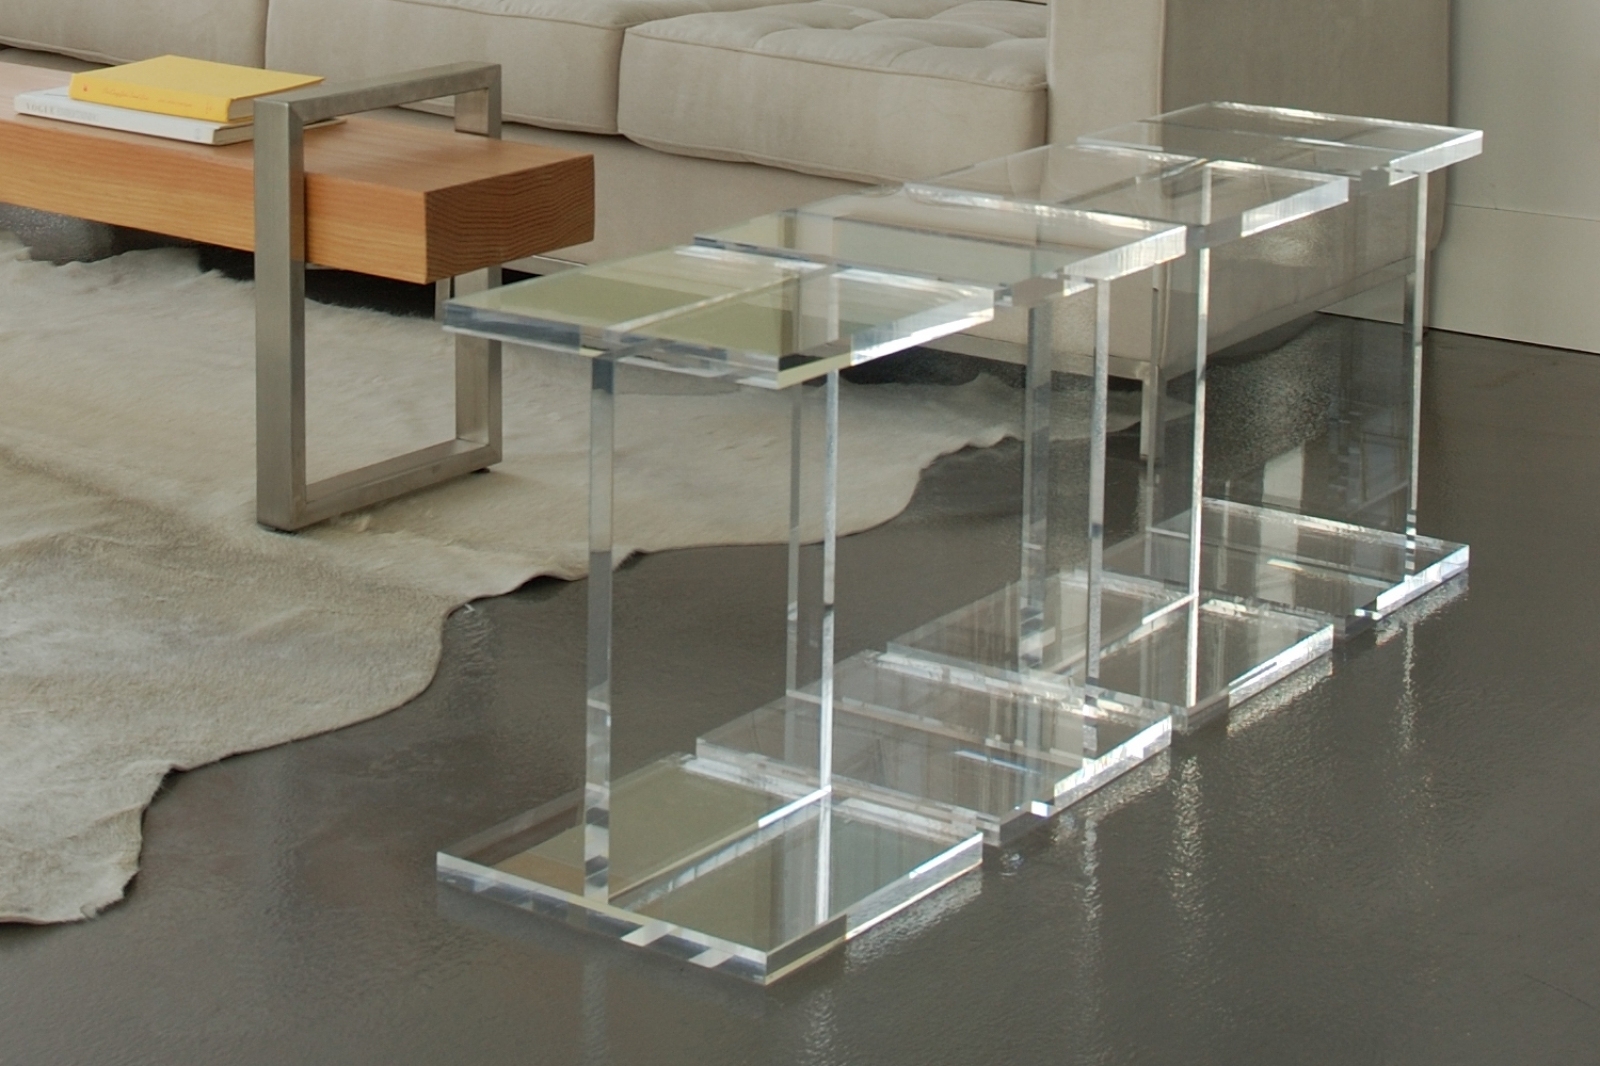 modern clear console table treatment furniture acrylic accent allen jones antique looking end tables illusion grey bedroom chair green whole lamp shades basic coffee garden covers